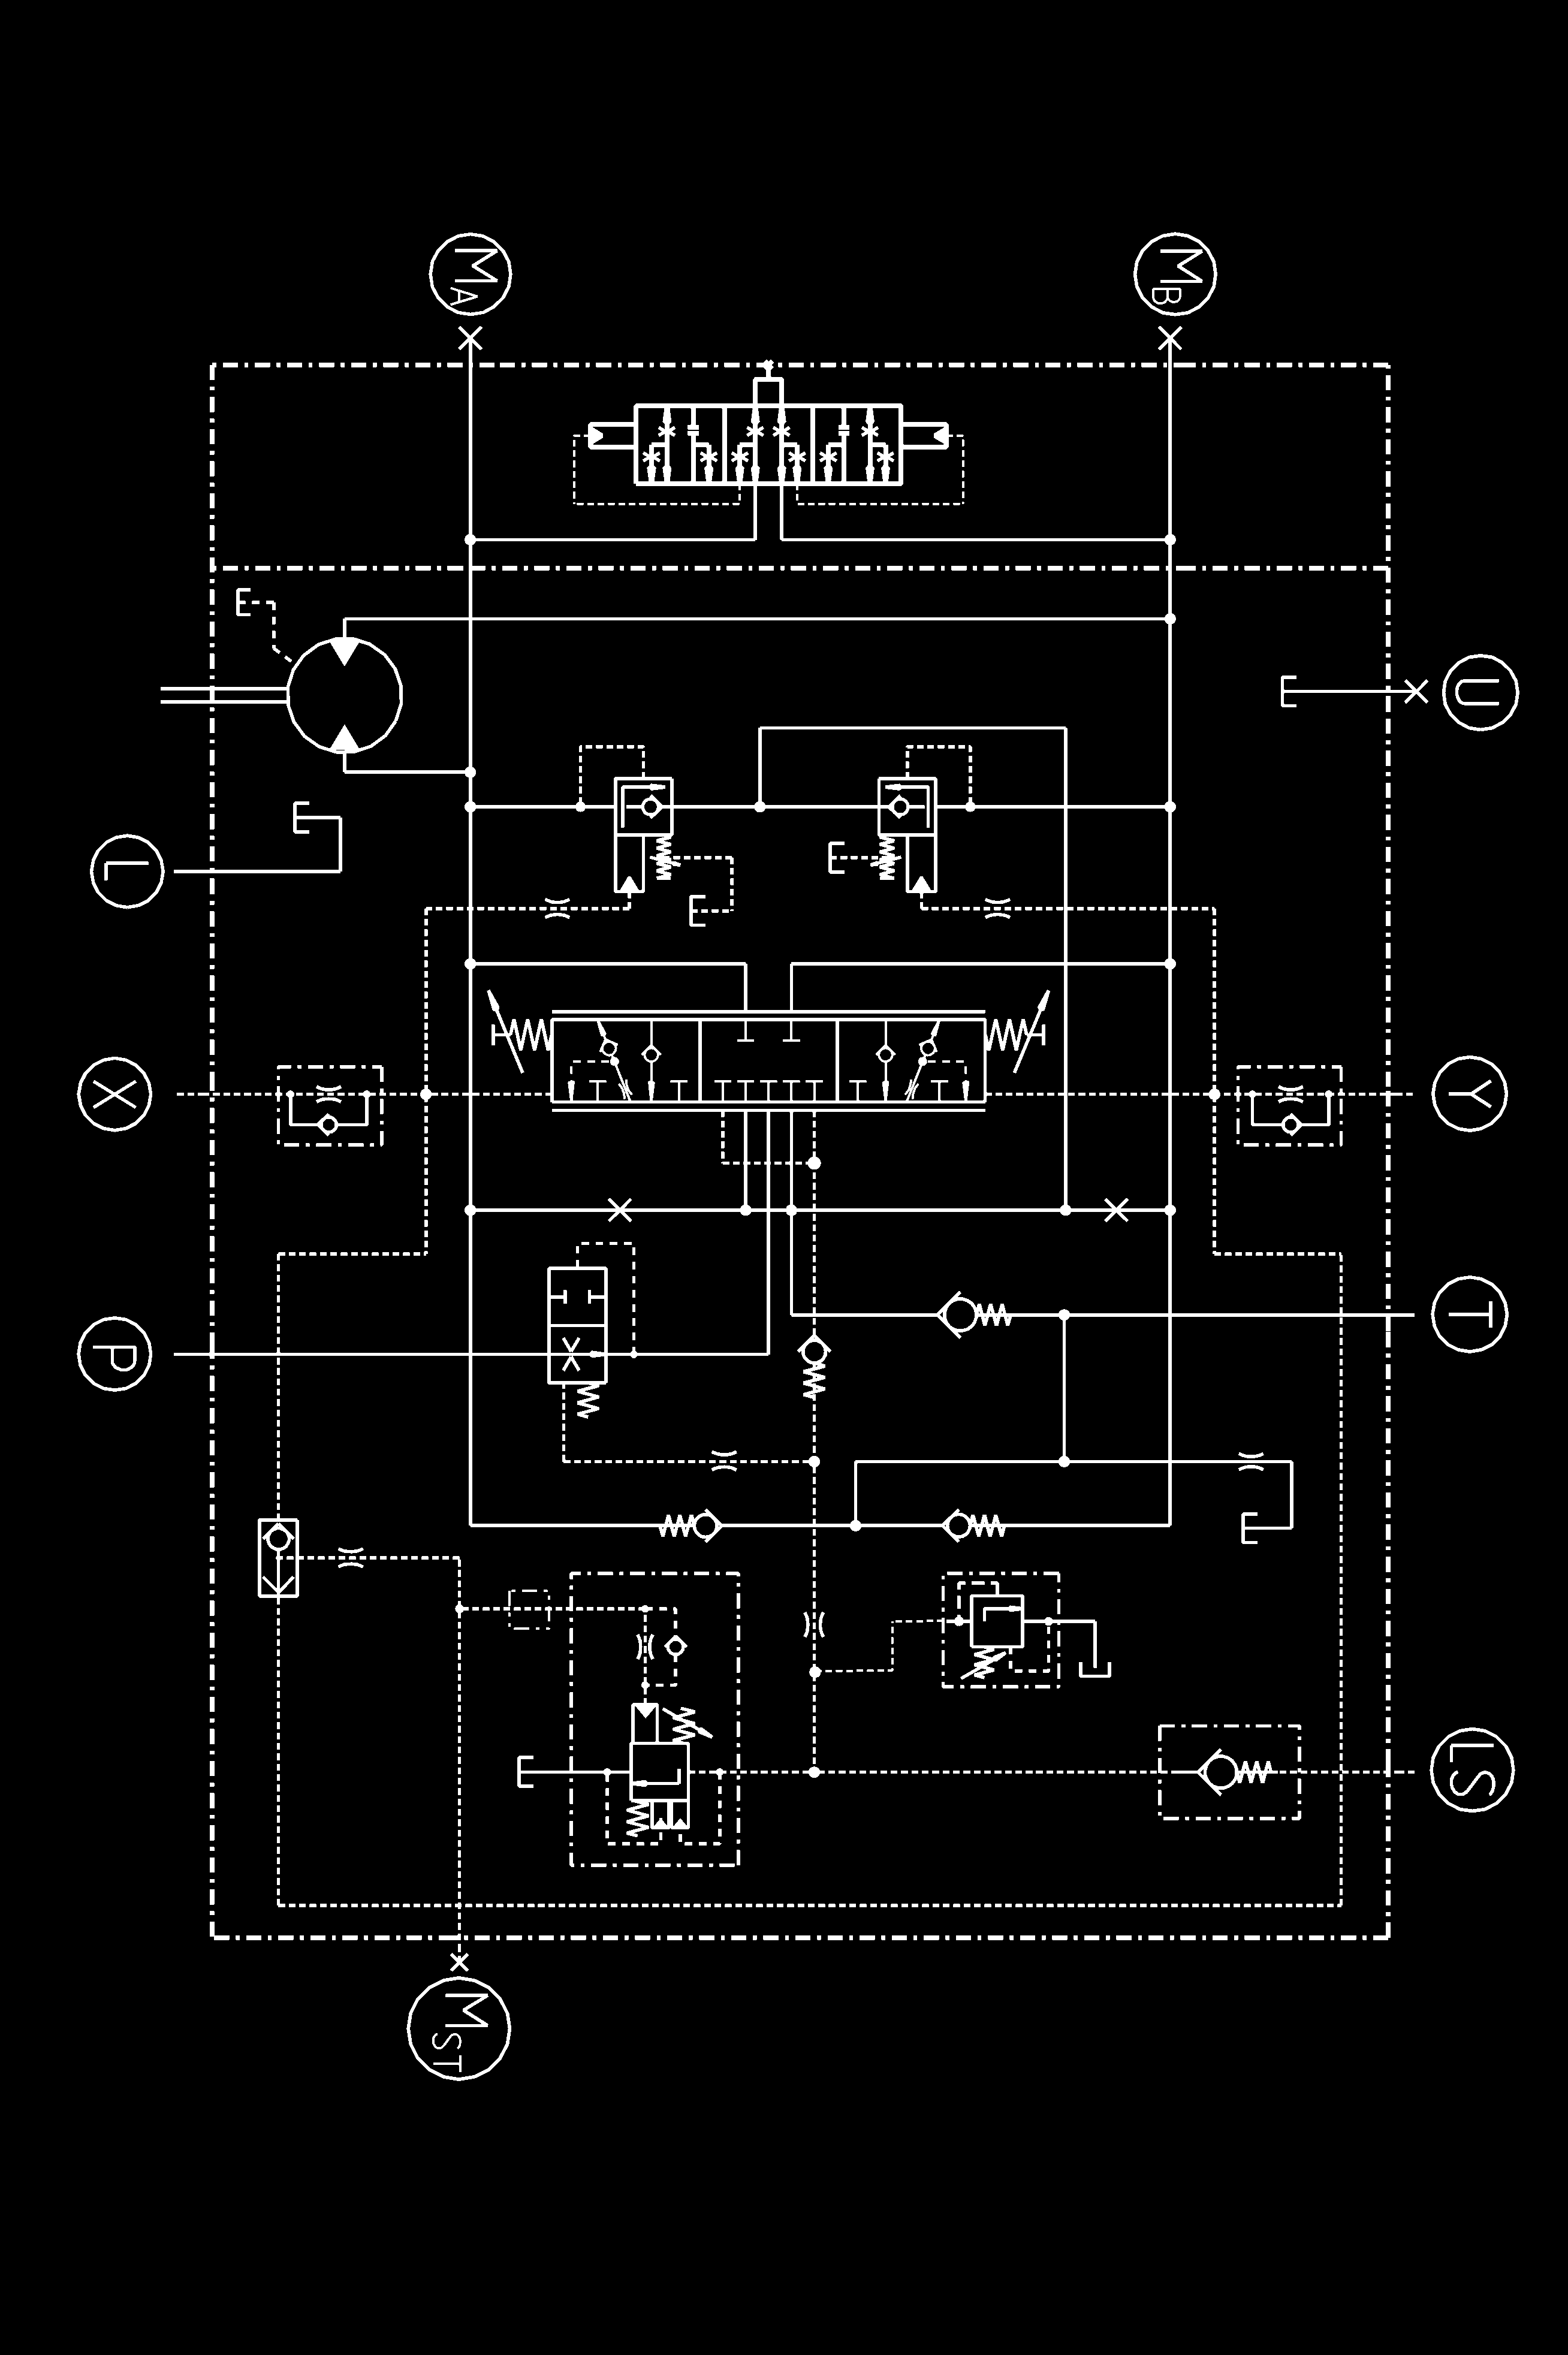 Motor Operated Valve Loop Diagram Trusted Schematics Wiring Hmf A V R 02 Hydraulic Motors For Closed And Open Cooling Tower